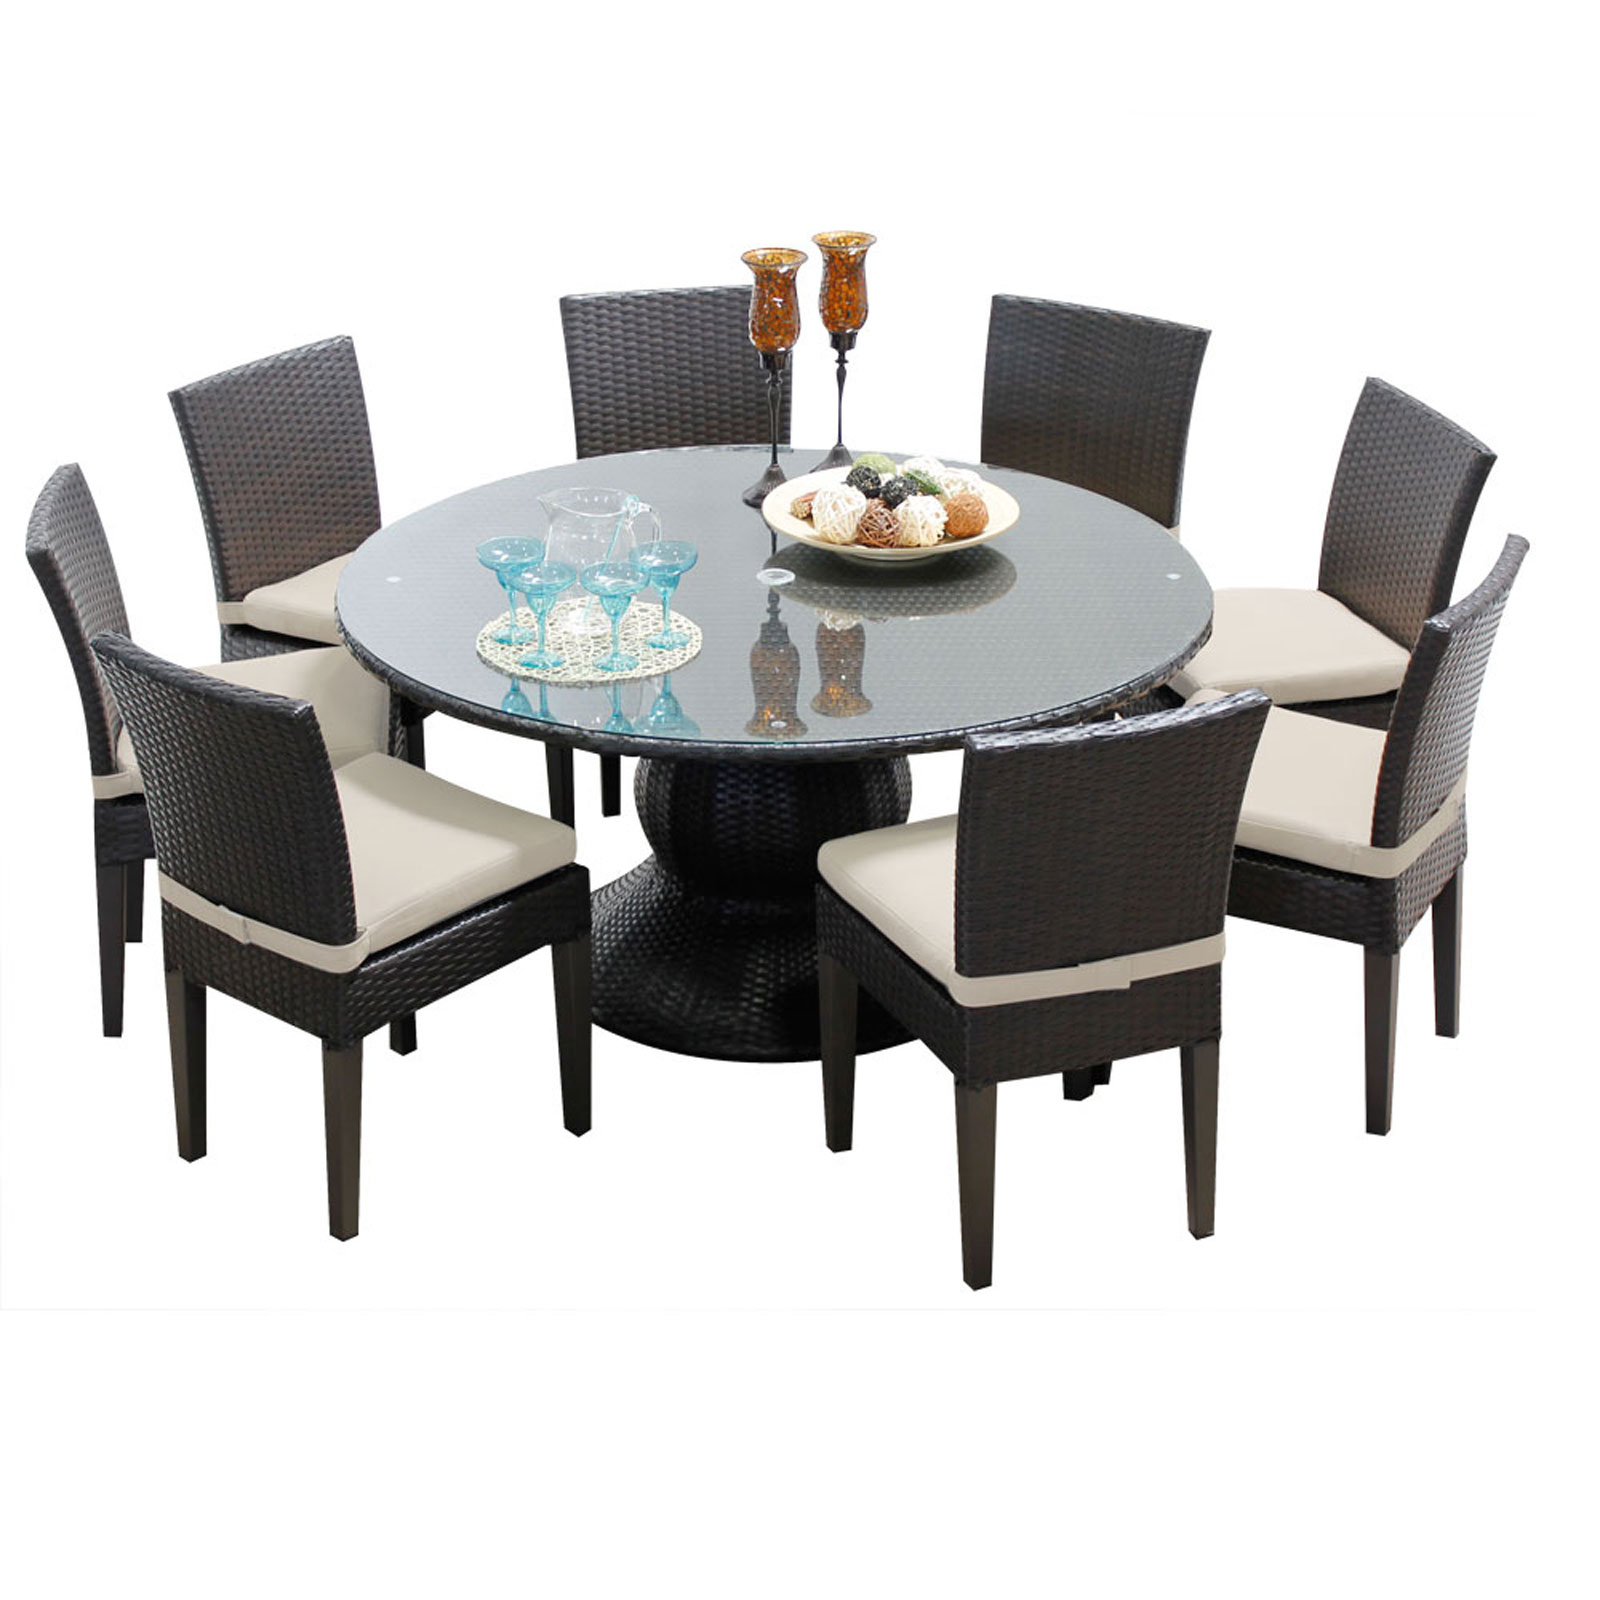 Pluto 60 Inch Outdoor Patio Dining Table With 8 Chairs  sc 1 st  Walmart.com & Pluto 60 Inch Outdoor Patio Dining Table With 8 Chairs - Walmart.com